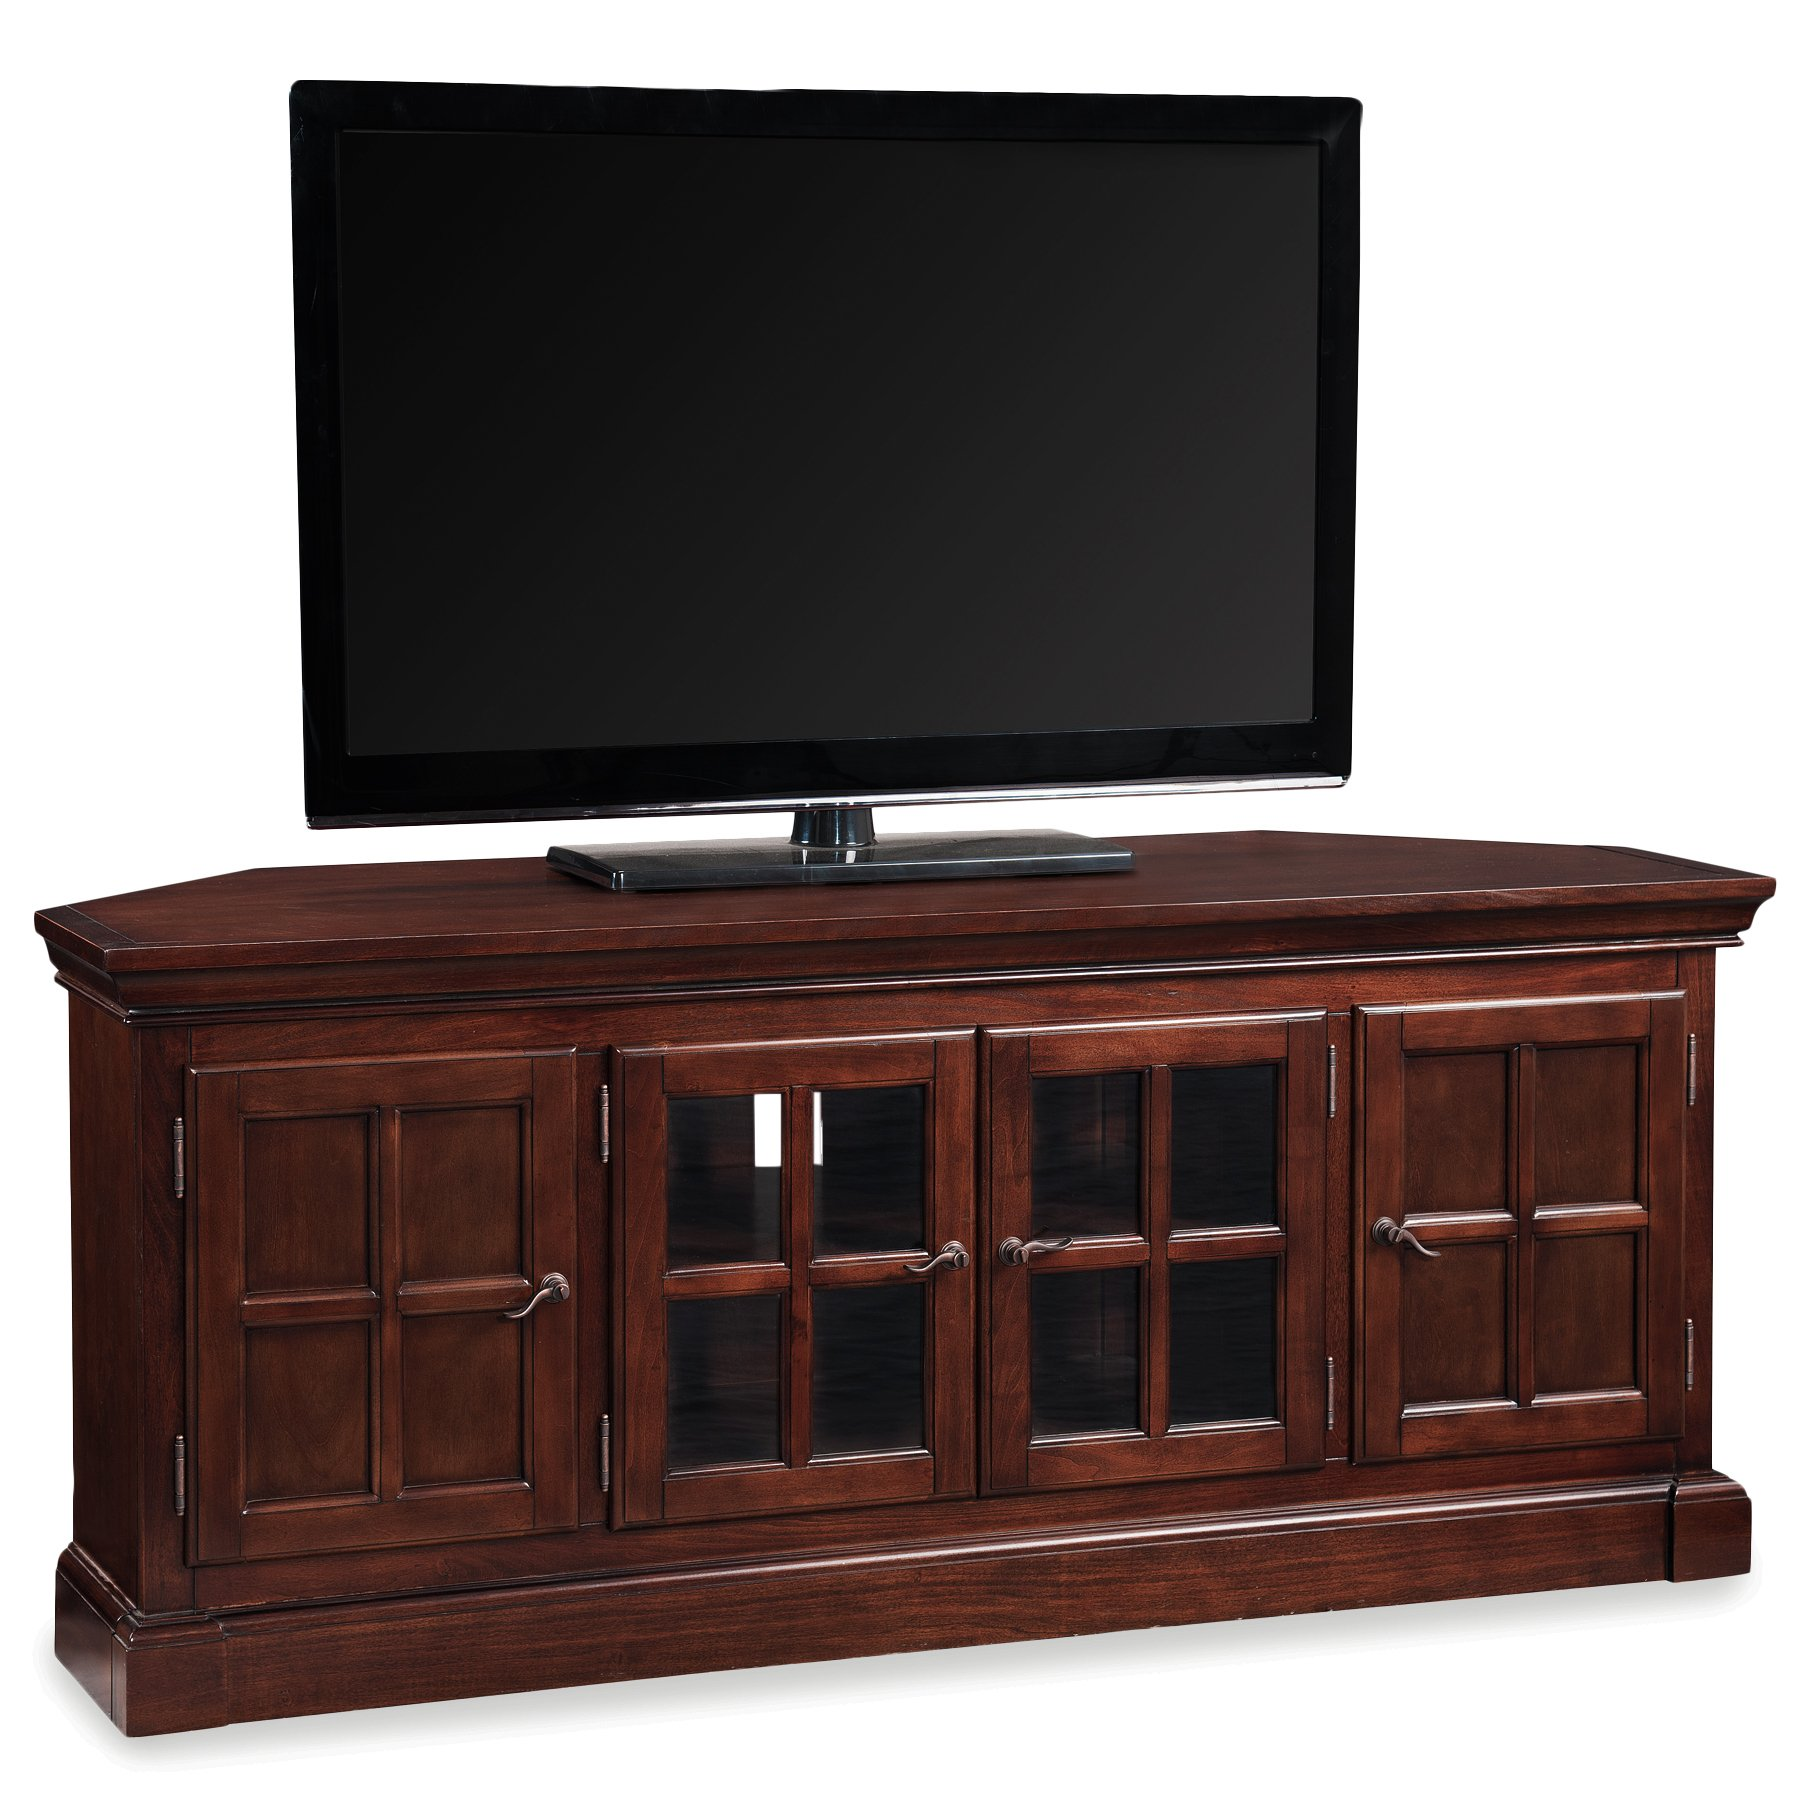 Leick 81586 Bella Maison 56'' Corner TV Stand with Lever Handles, Chocolate Cherry